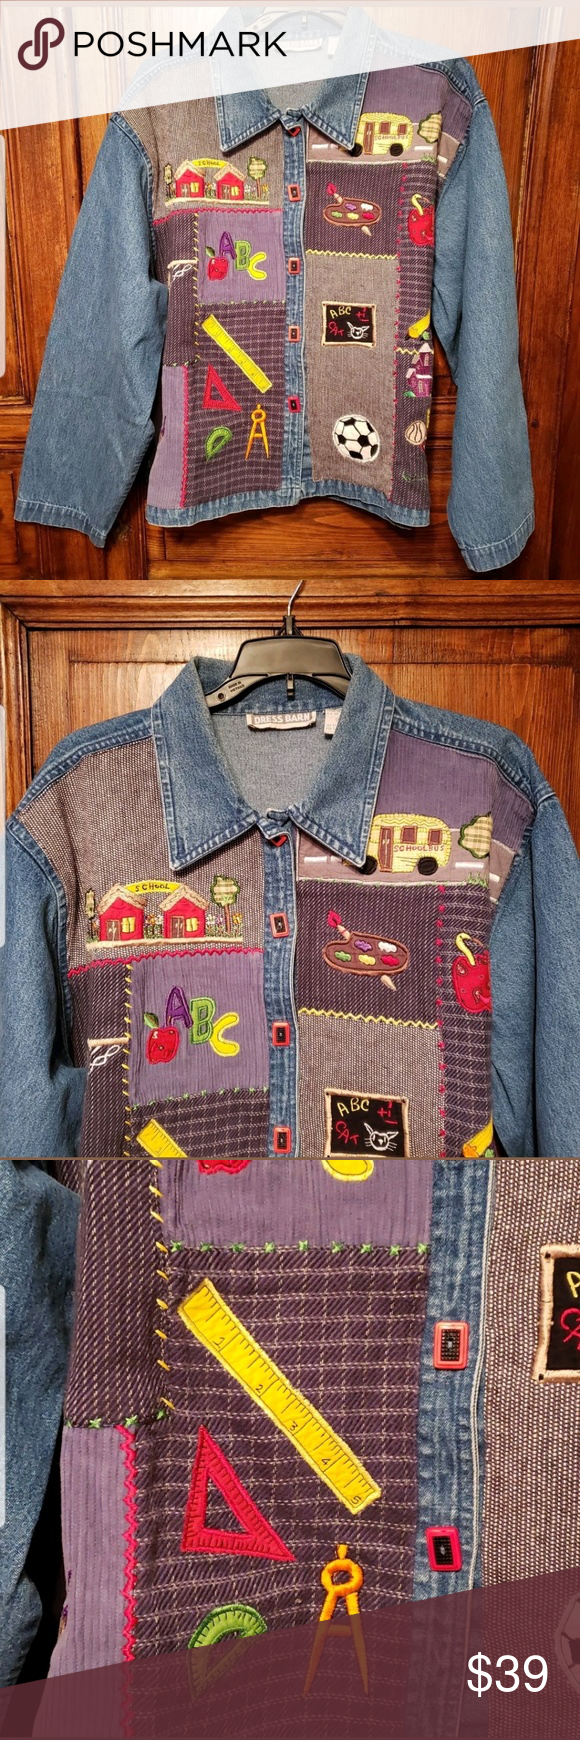 Vintage Denim Jacket Back to School Teacher sz XL Vintage